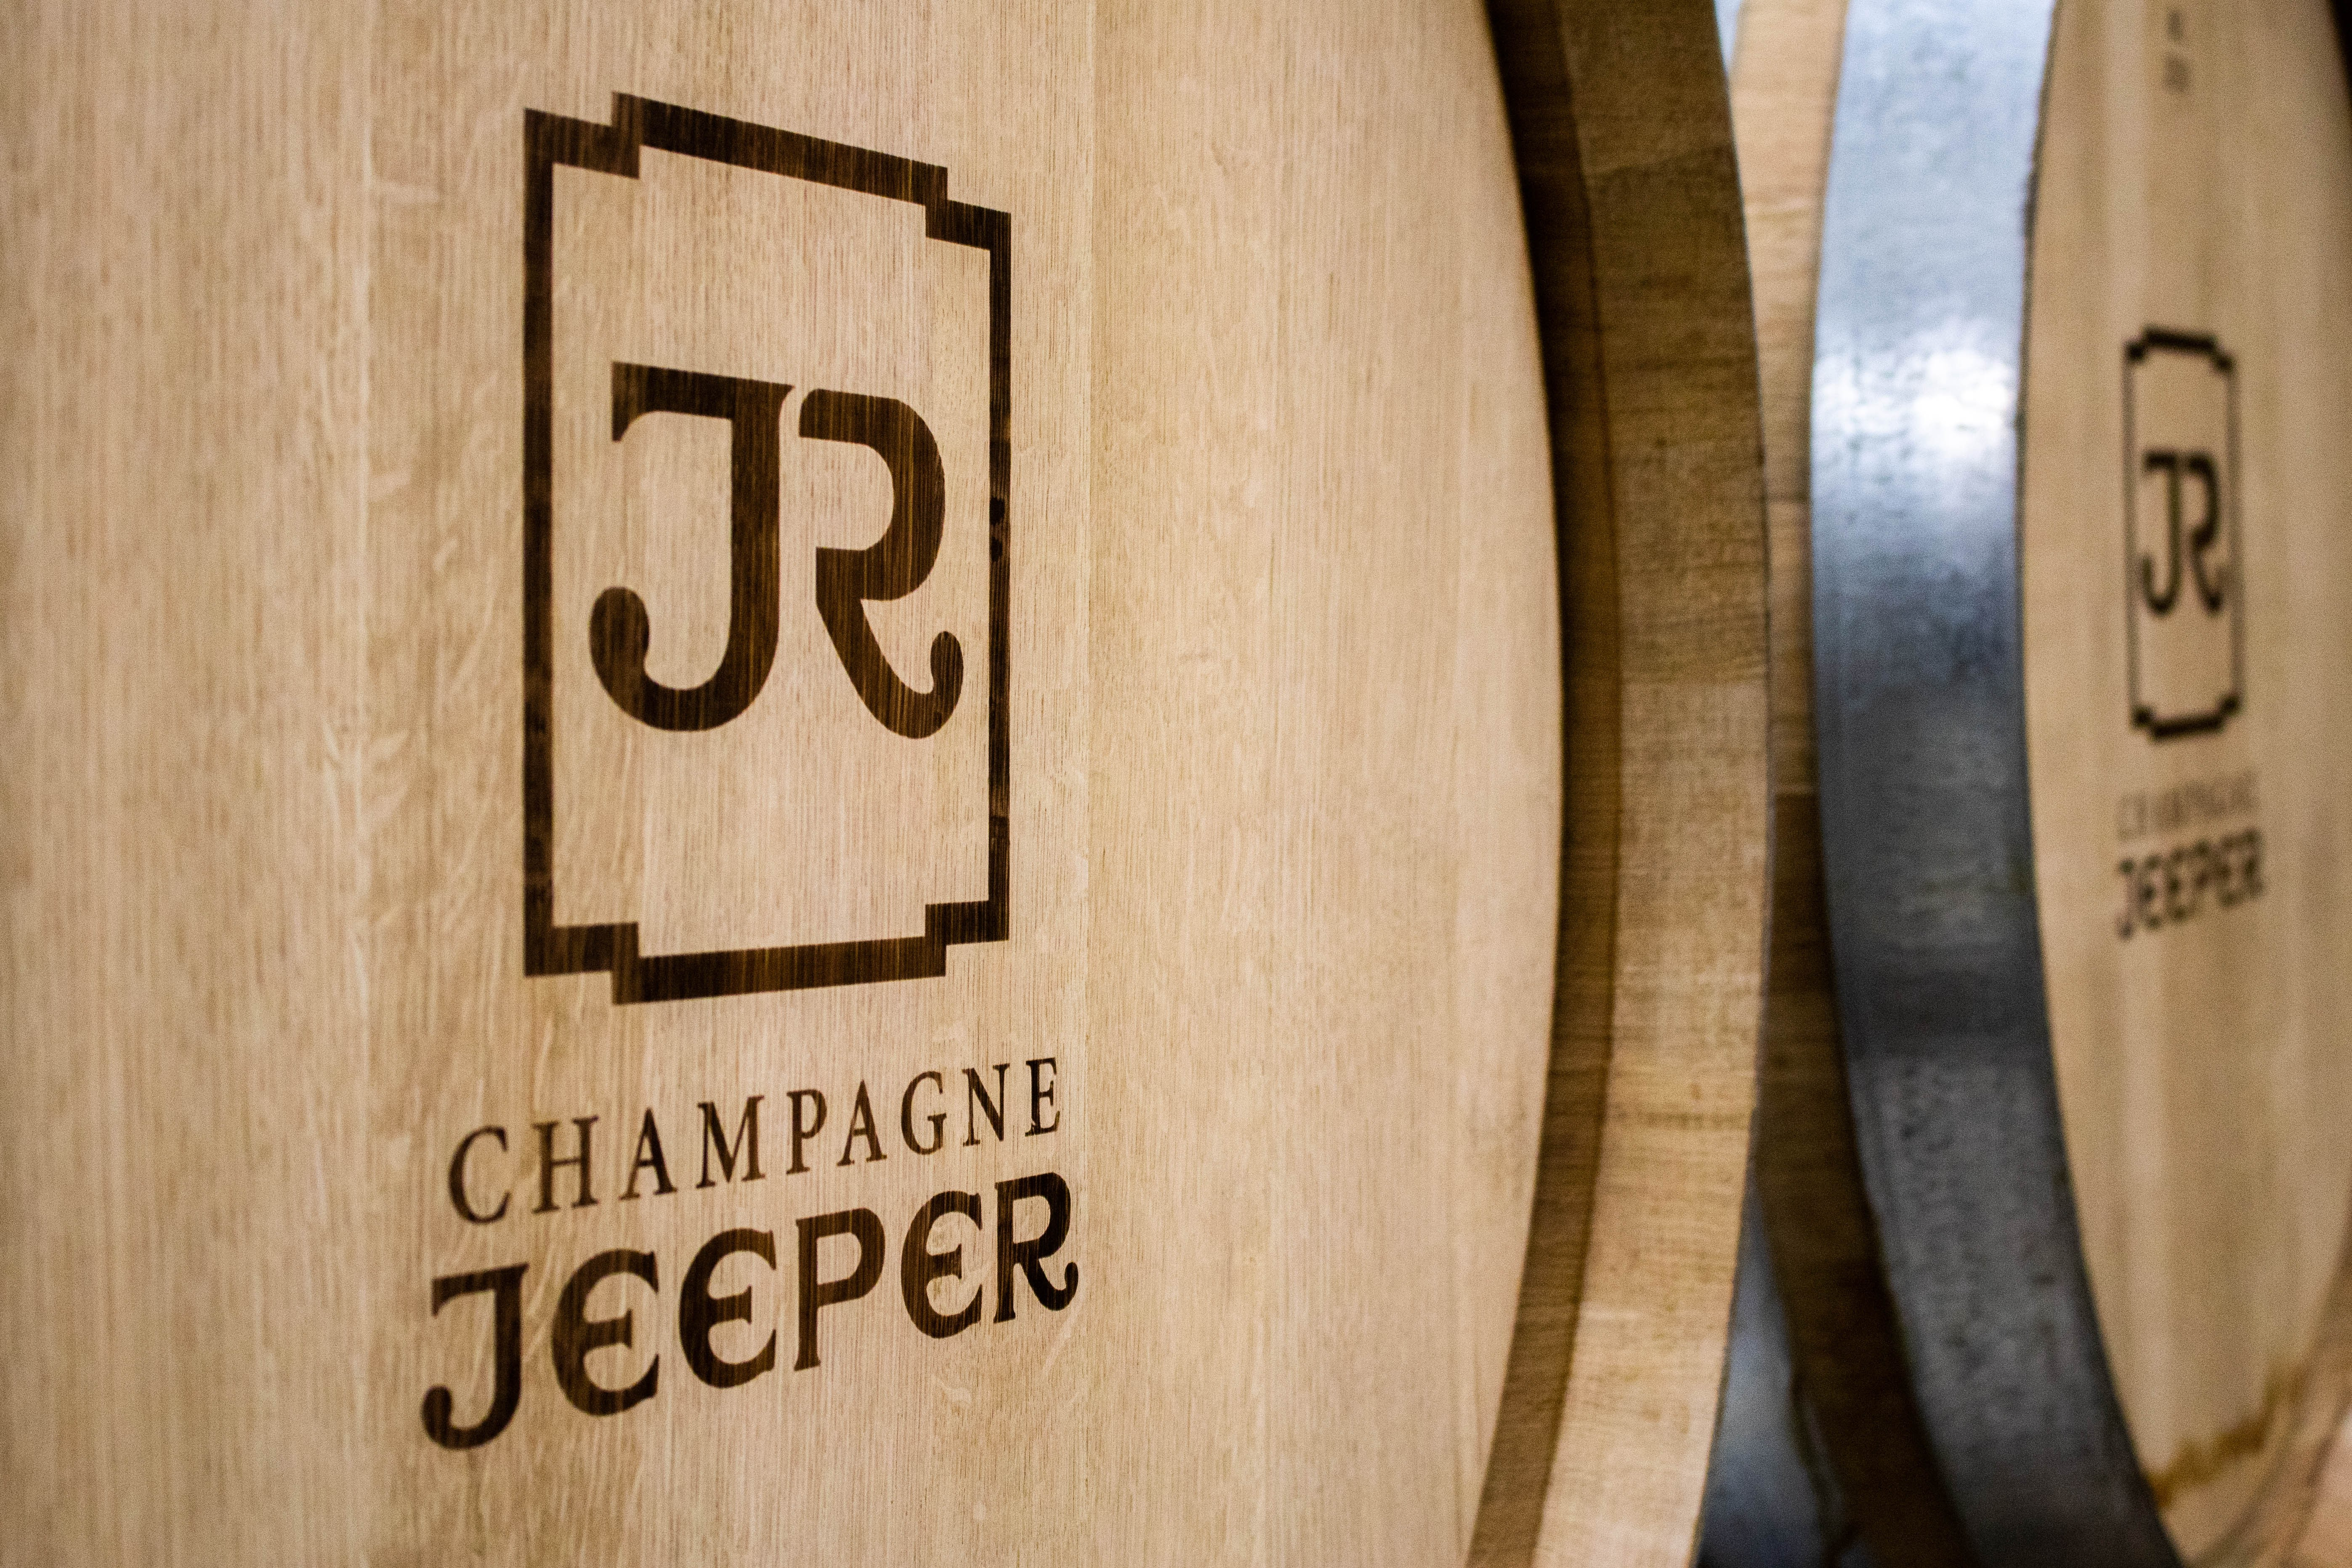 image-prop-contact-champagne-jeeper